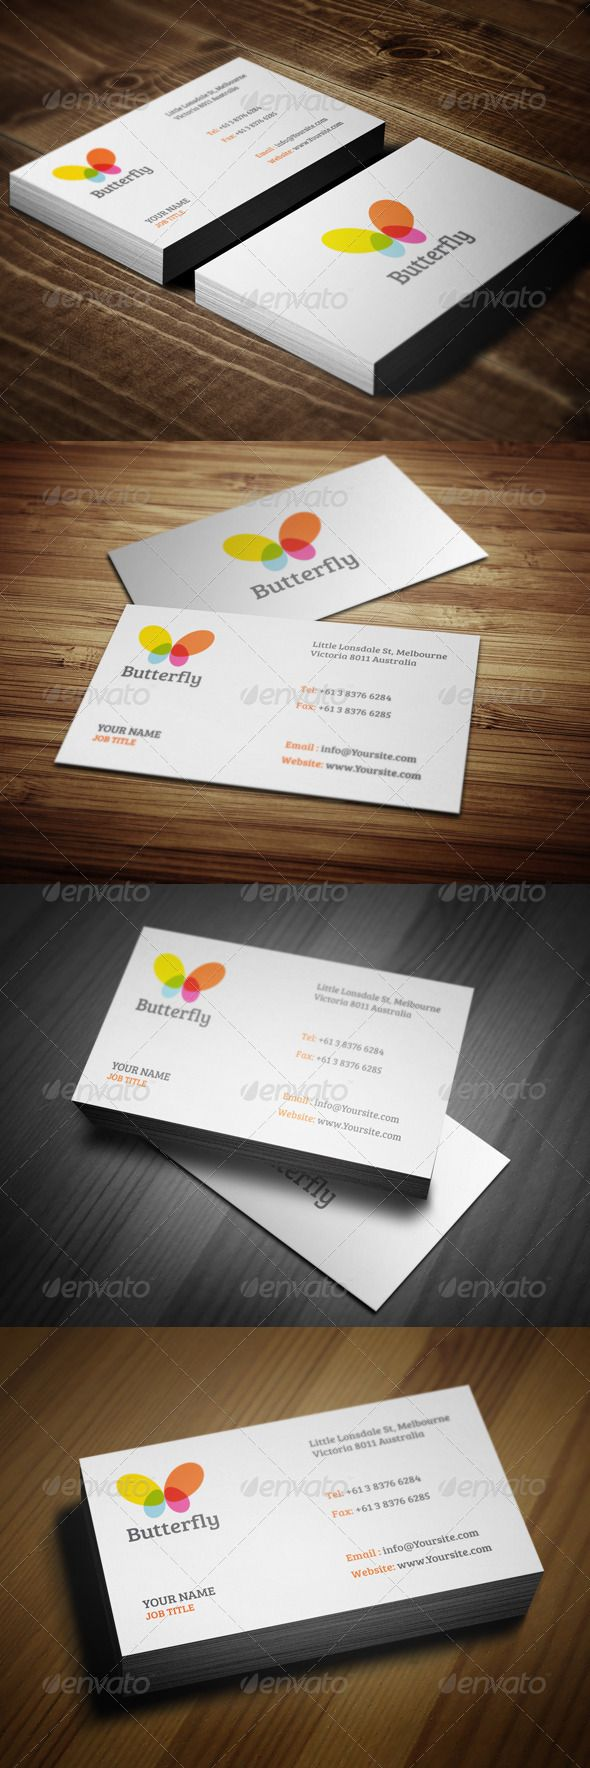 16 best simple business card mood board images on pinterest simple butterfly business cards reheart Choice Image